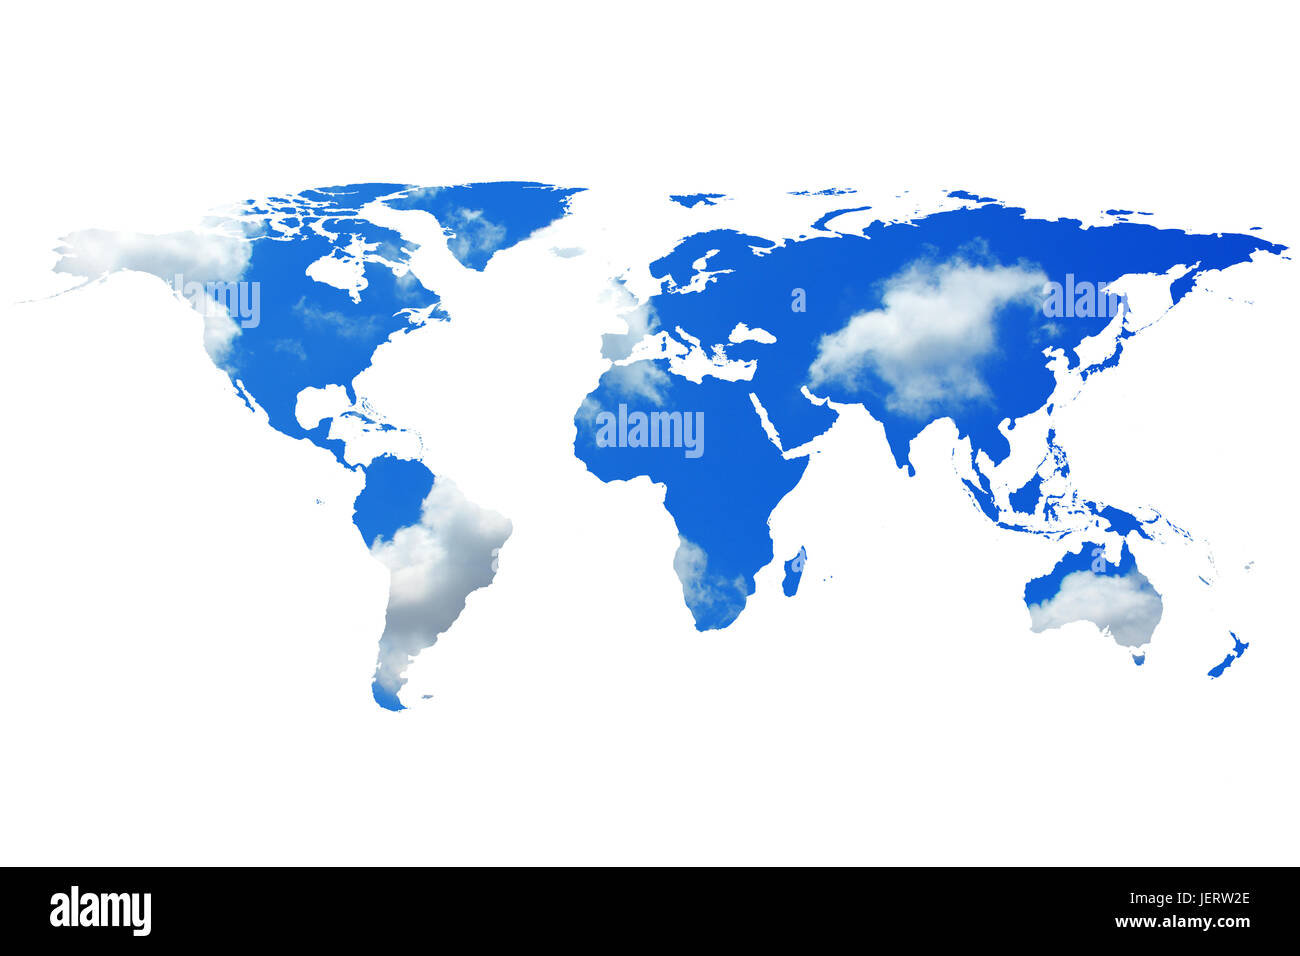 Conceptual image of flat world map and cloudy sky nasa flat world conceptual image of flat world map and cloudy sky nasa flat world map image used to furnish this image gumiabroncs Gallery